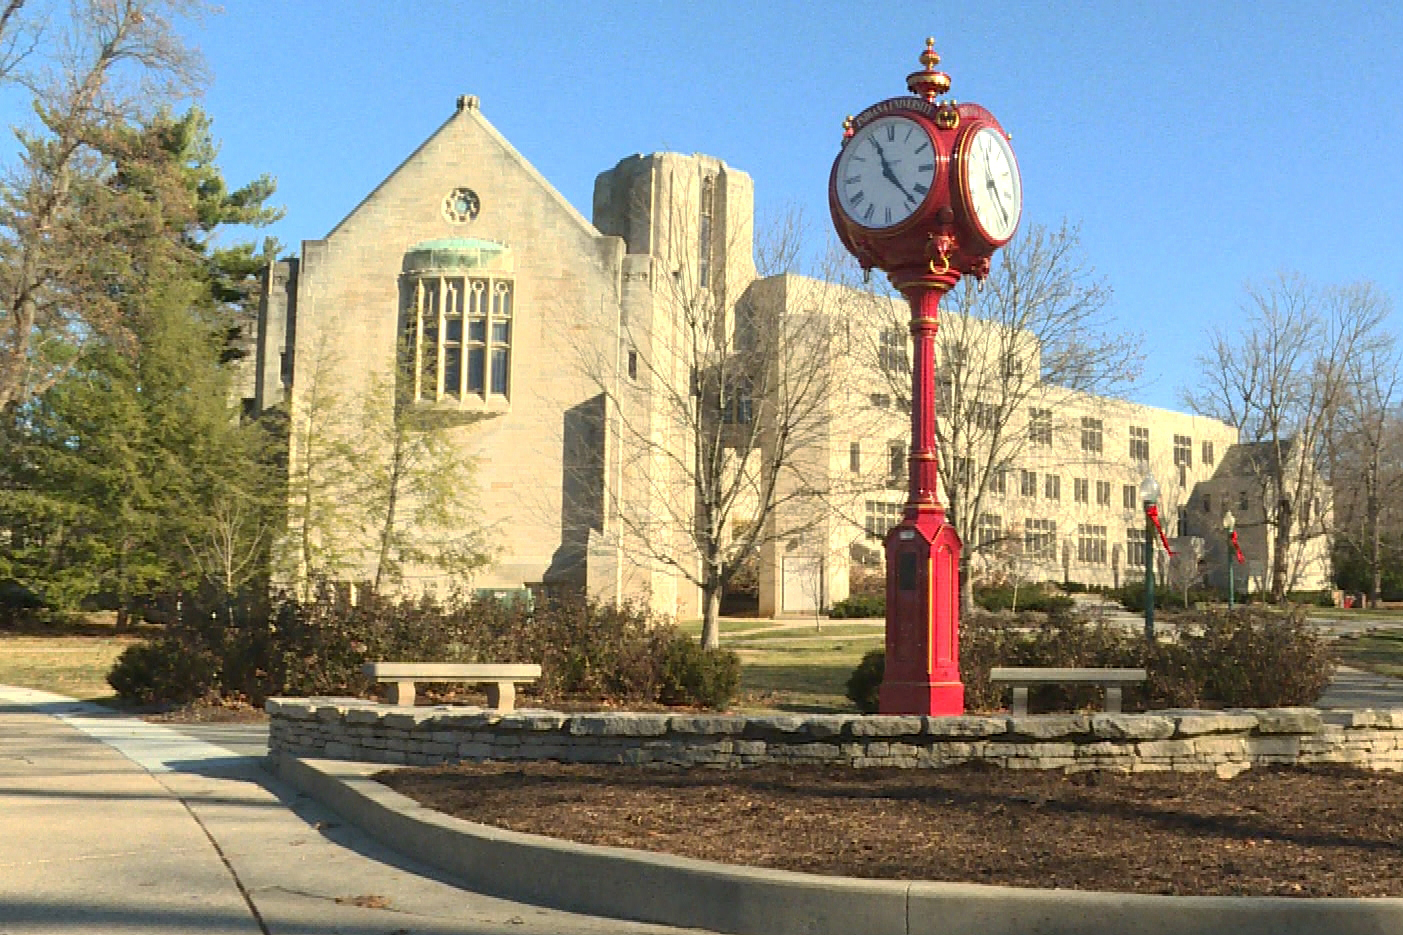 An Indiana University student says Guo Ping Wang sexually assaulted her on campus.